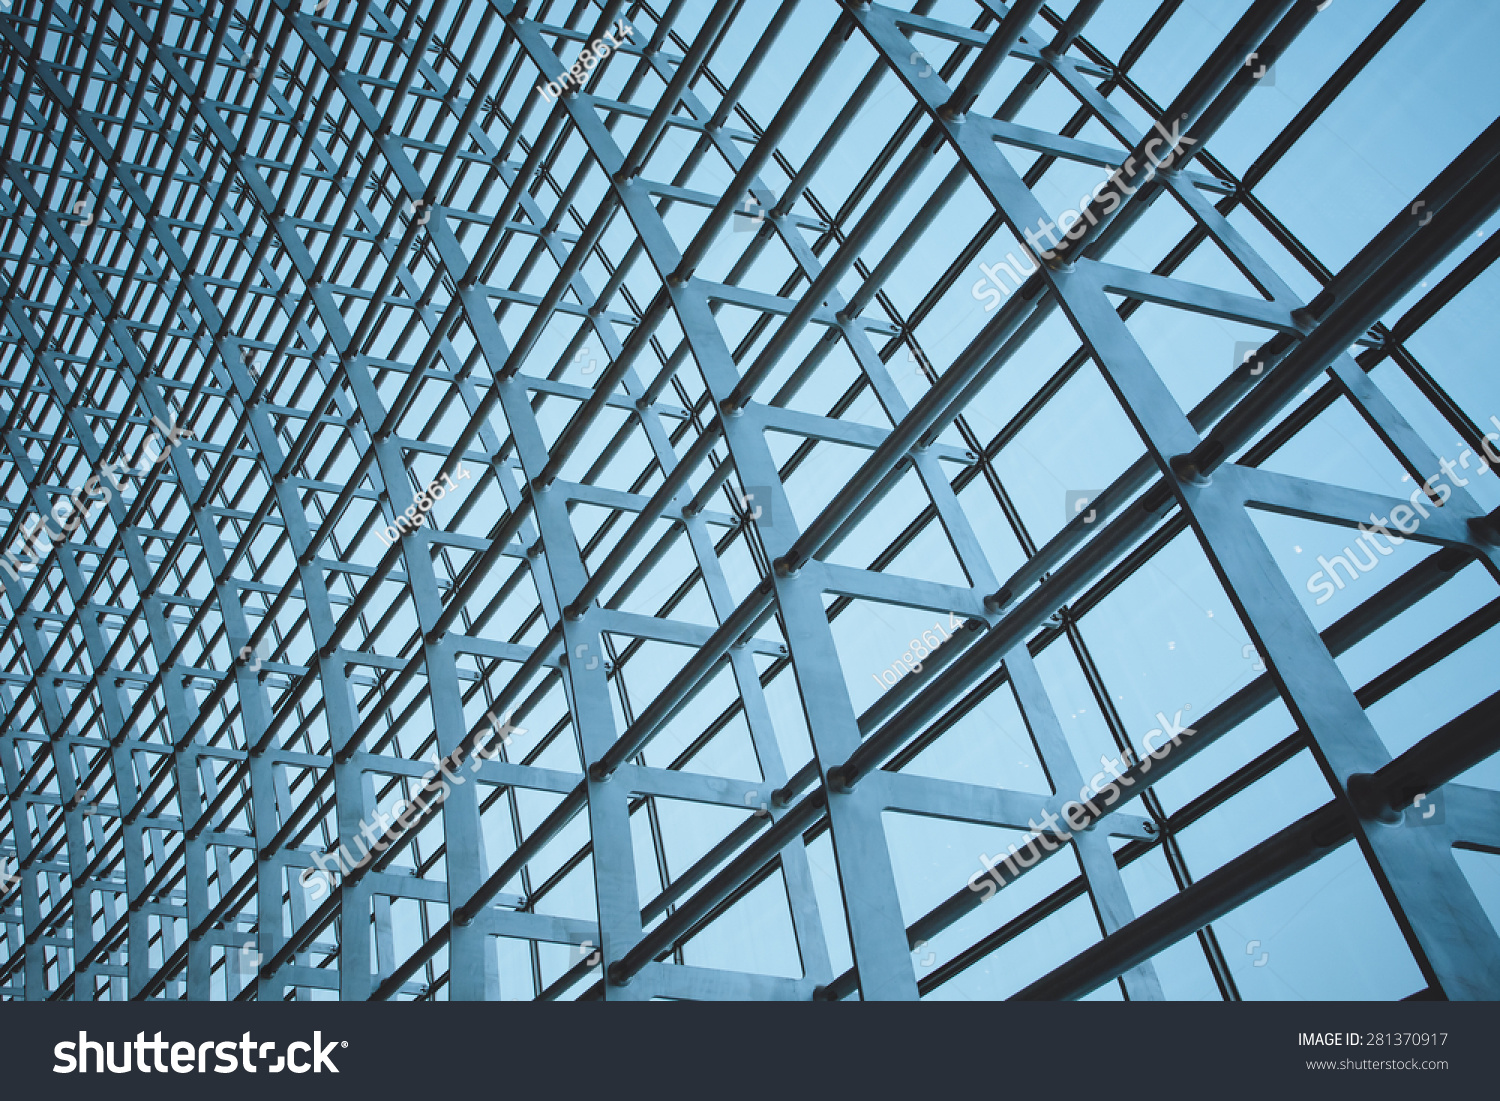 The steel structure of the glass wall in Beijing #281370917 - 123PhotoFree.com